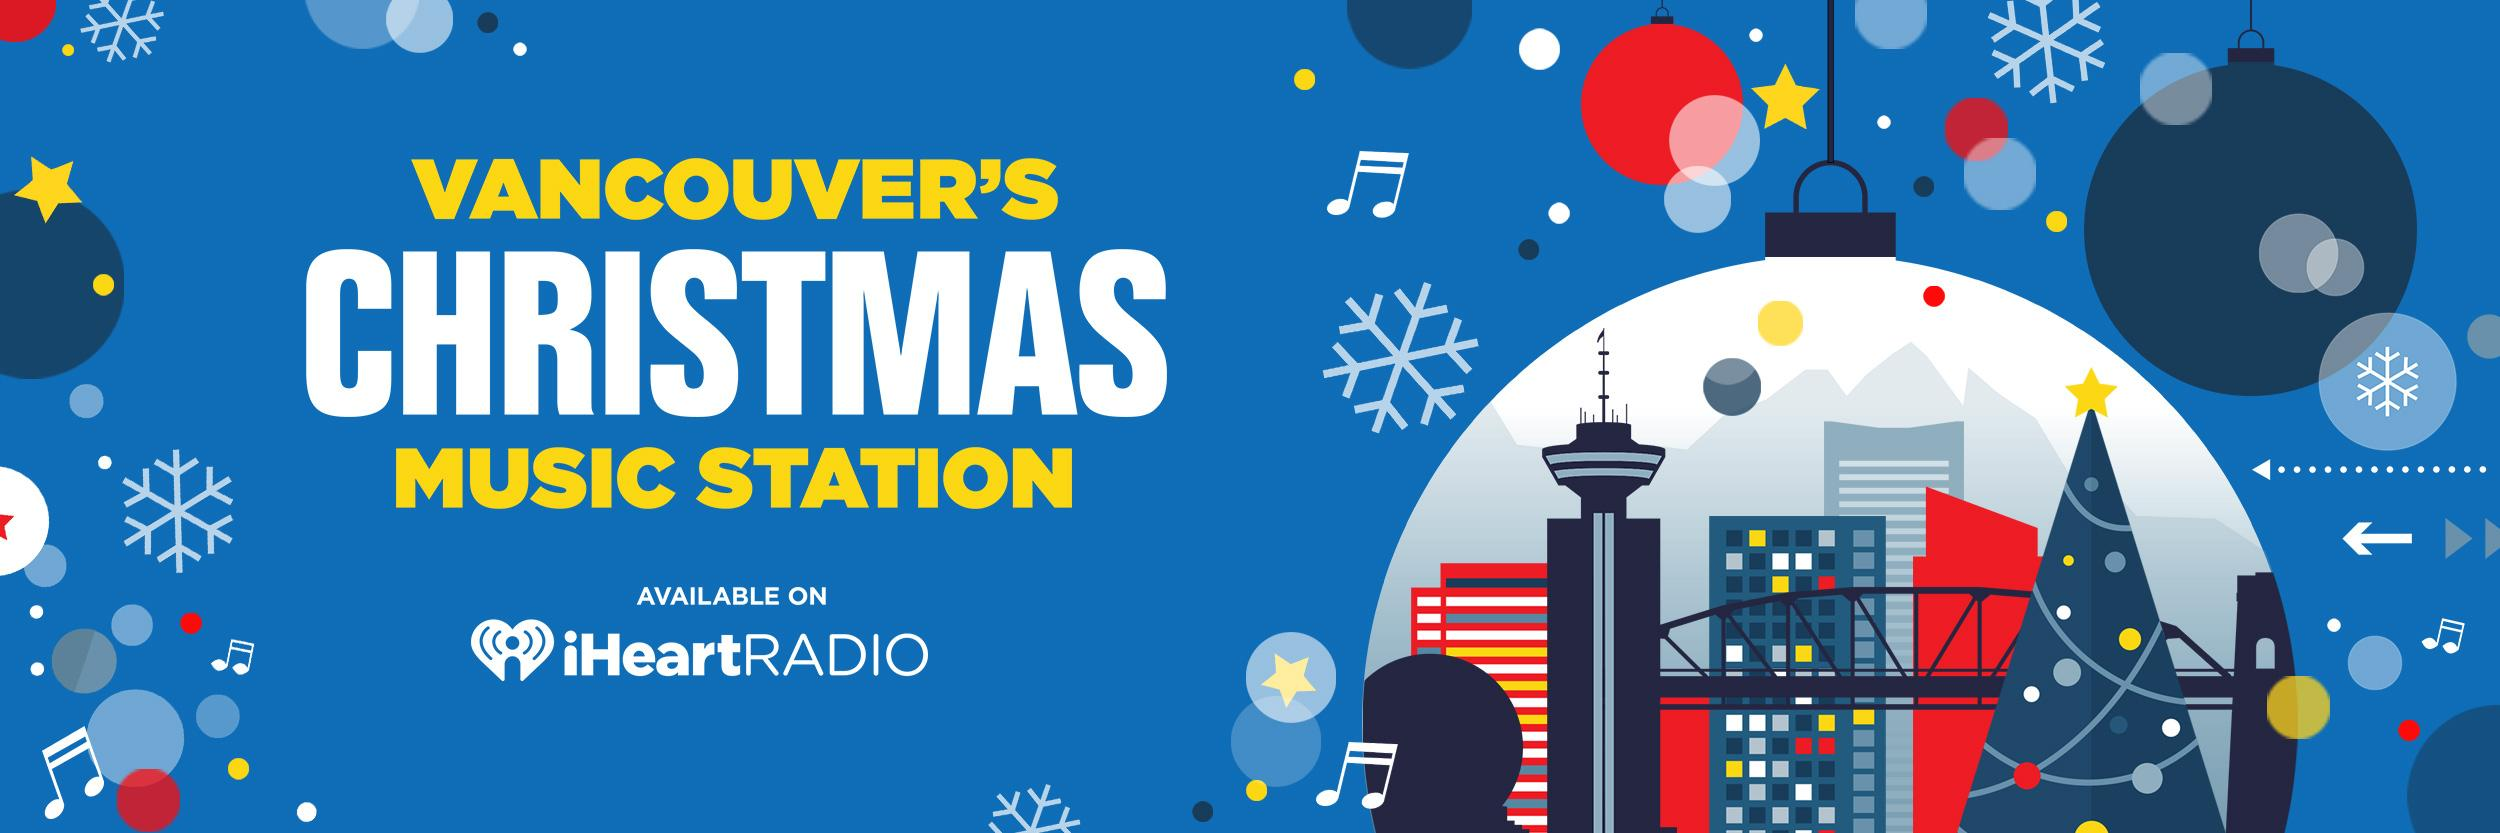 Vancouver Christmas Music Station 2020 Vancouver's Christmas Music Station